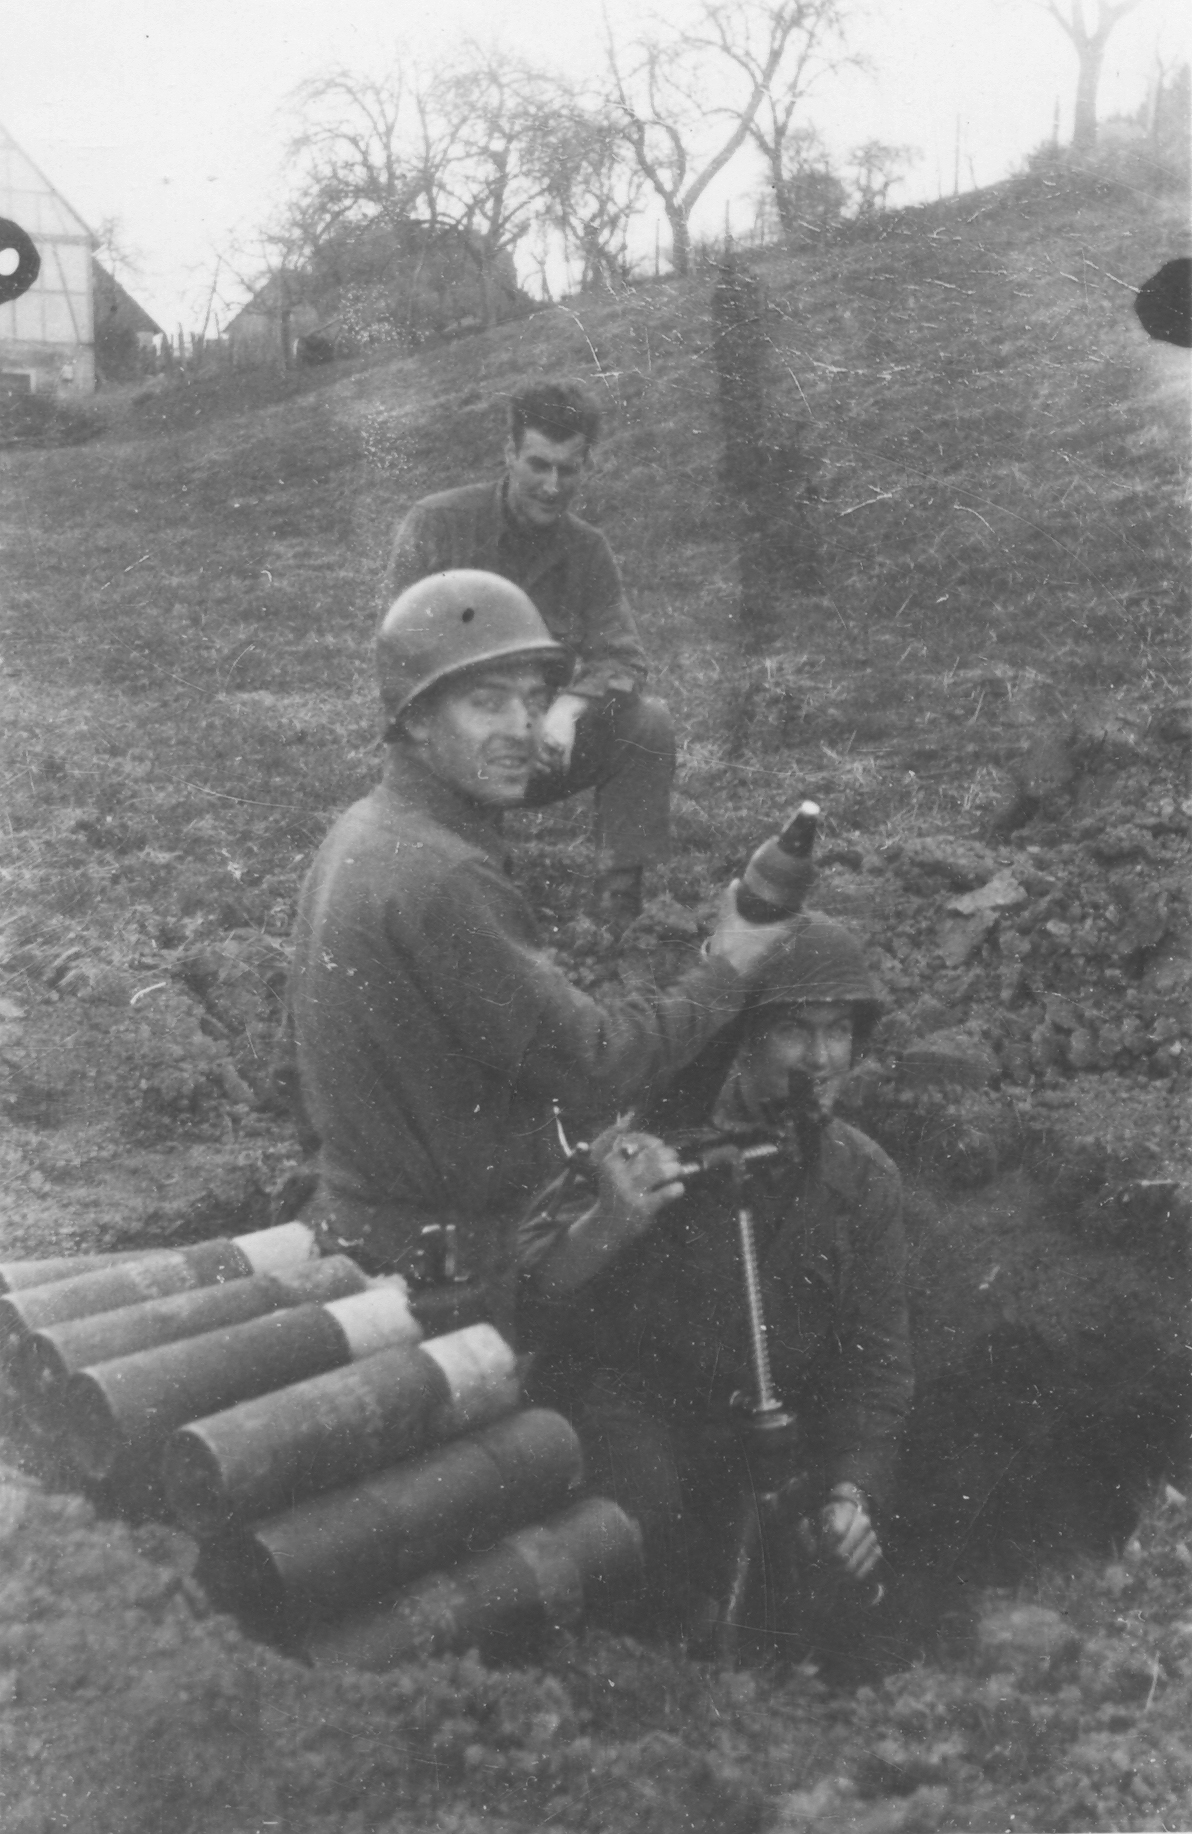 With his mortar crew